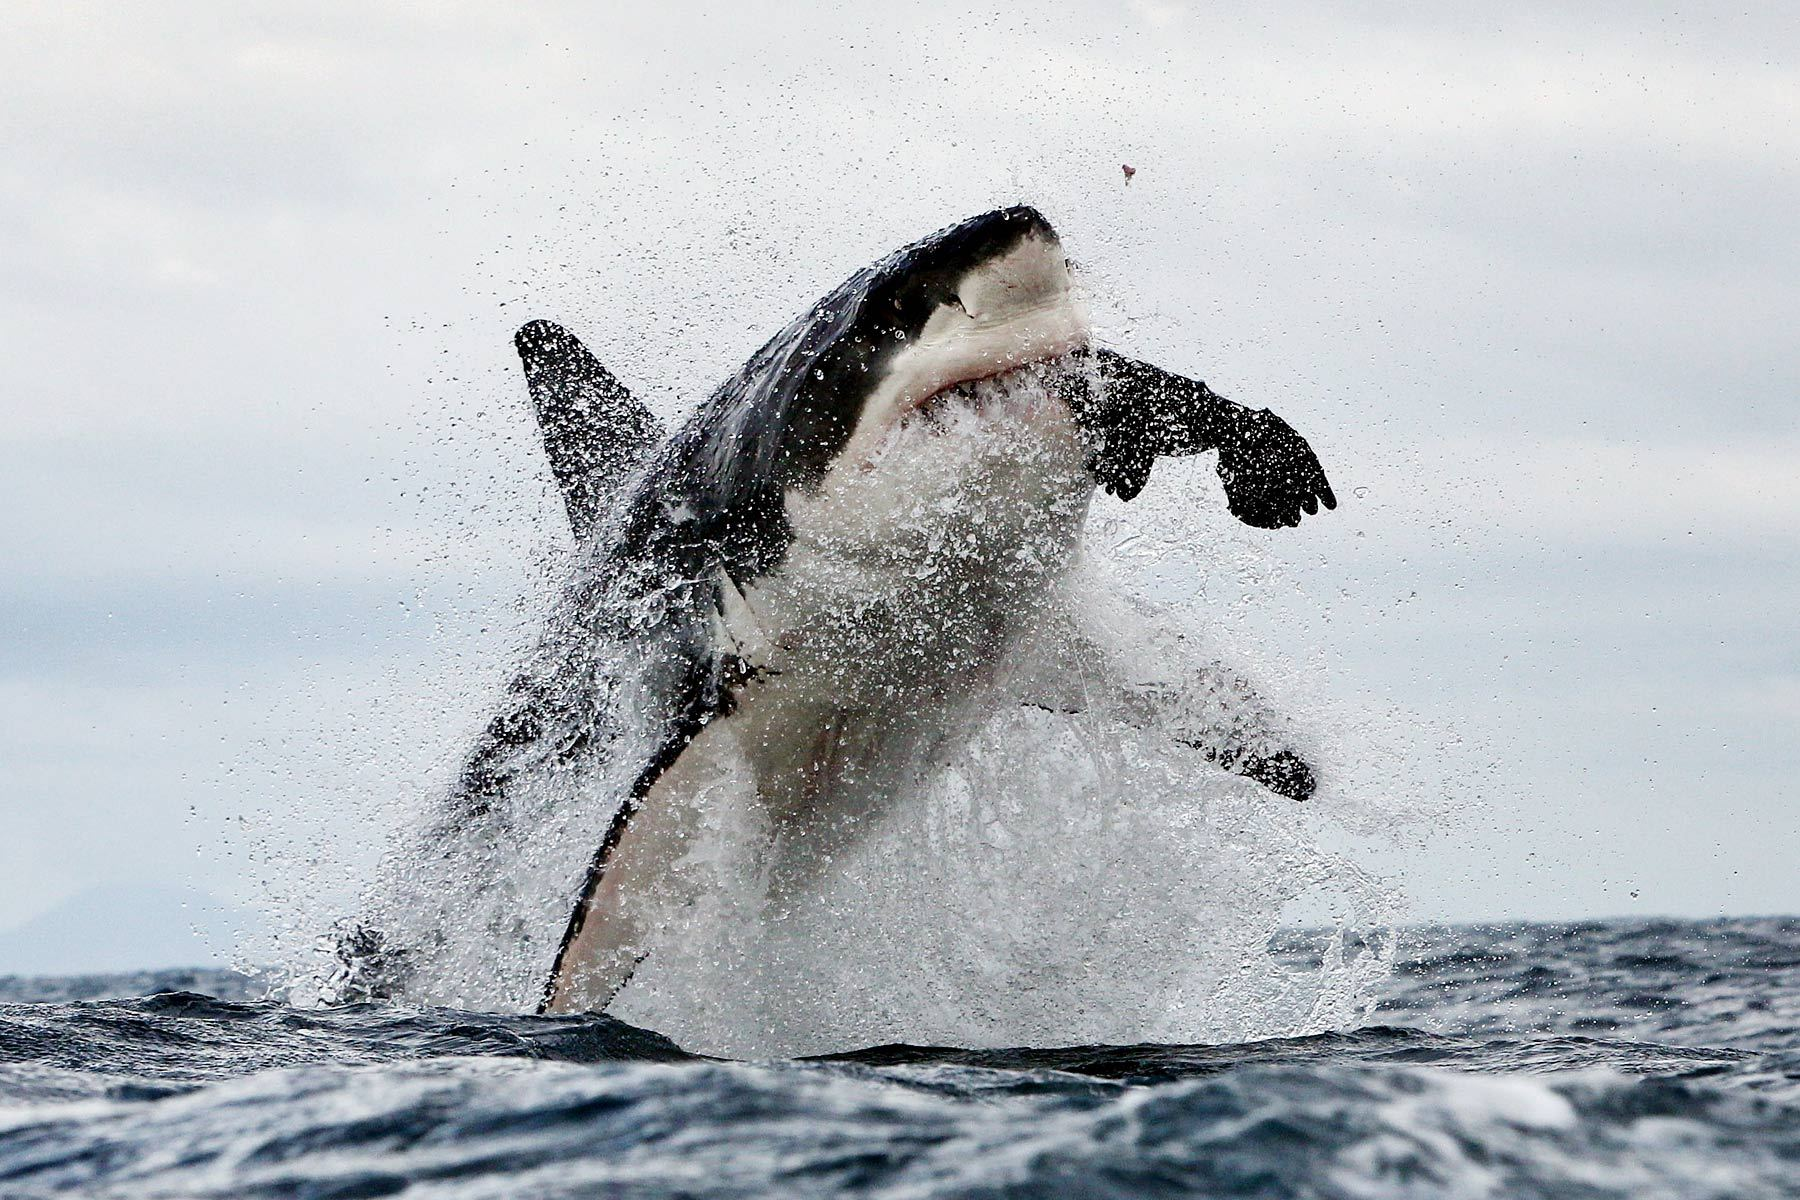 Great white shark breaching and catching seal